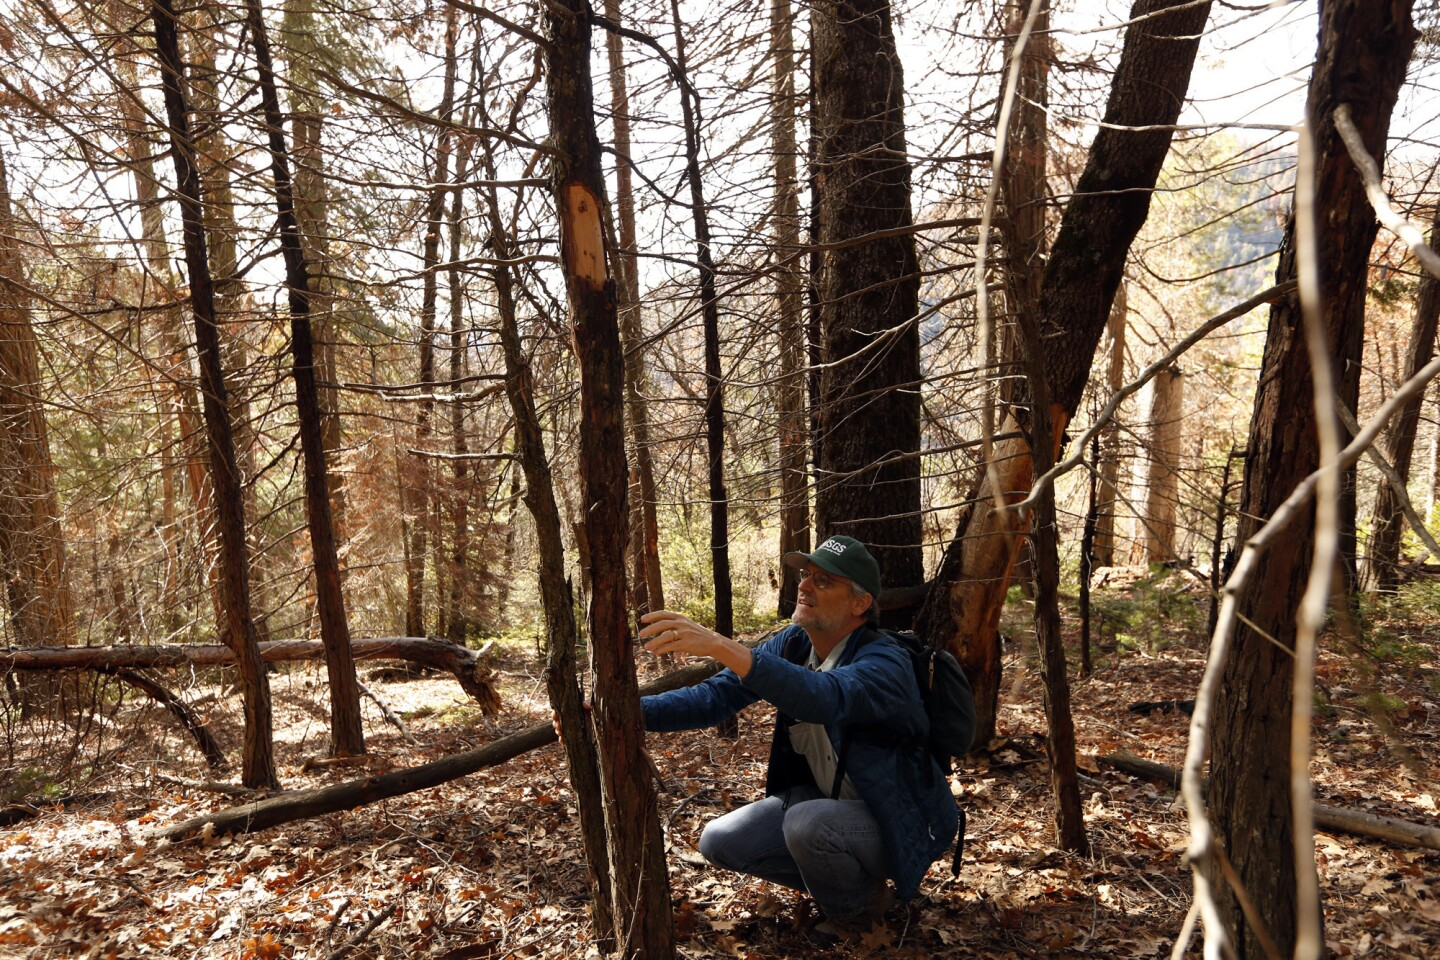 Research ecologist Nathan L. Stephenson looks over a dead incense cedar tree in a plot of land that ecologists have been studying since 1992 in the Sequoia National Park.